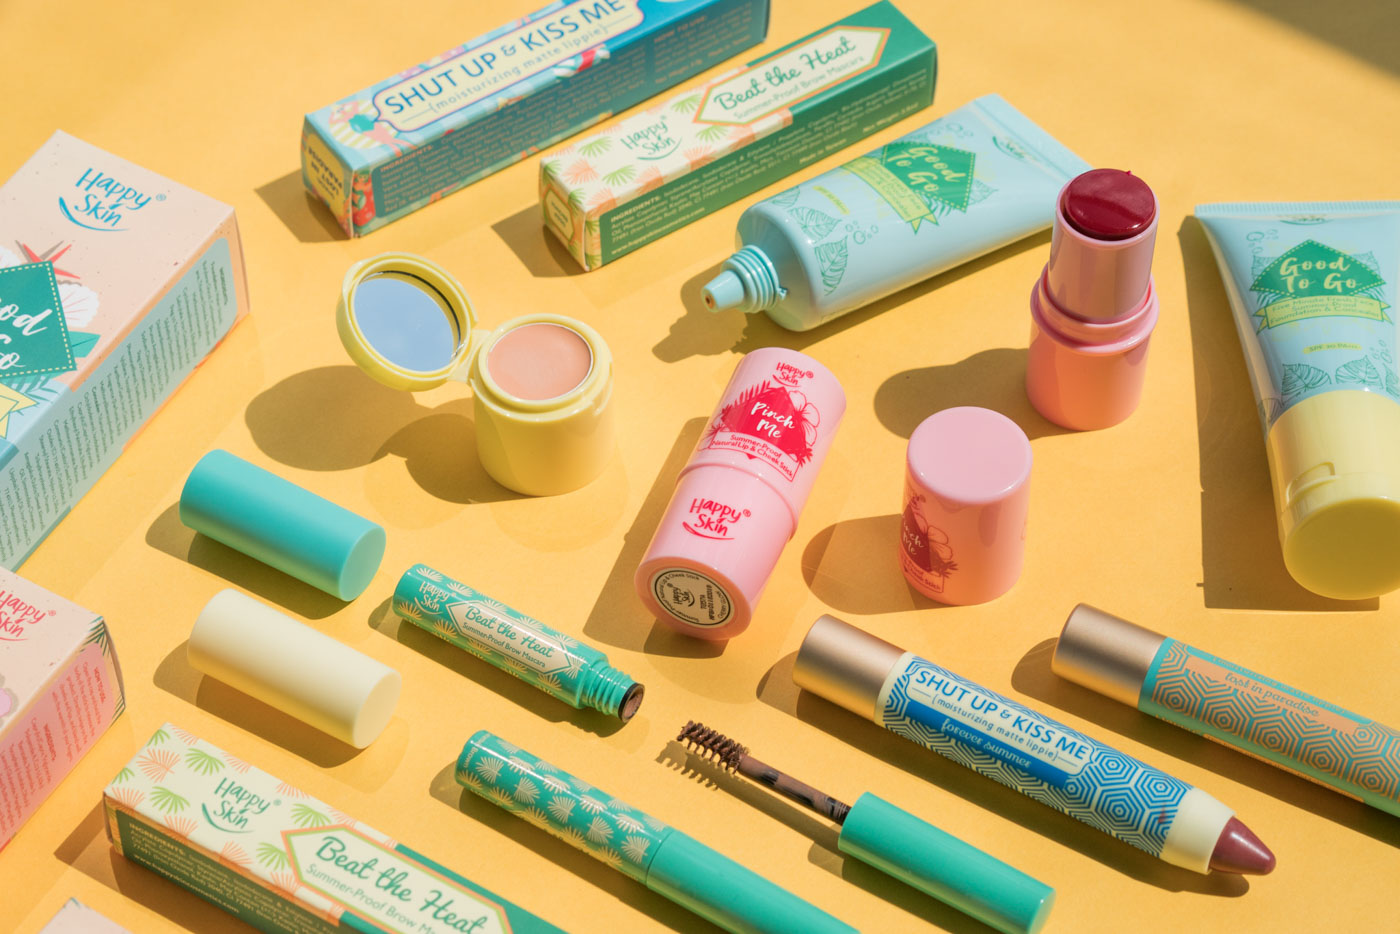 SUMMER-PROOF? We give our initial impressions on Happy Skin's latest collection. All photos by Martin San Diego/Rappler